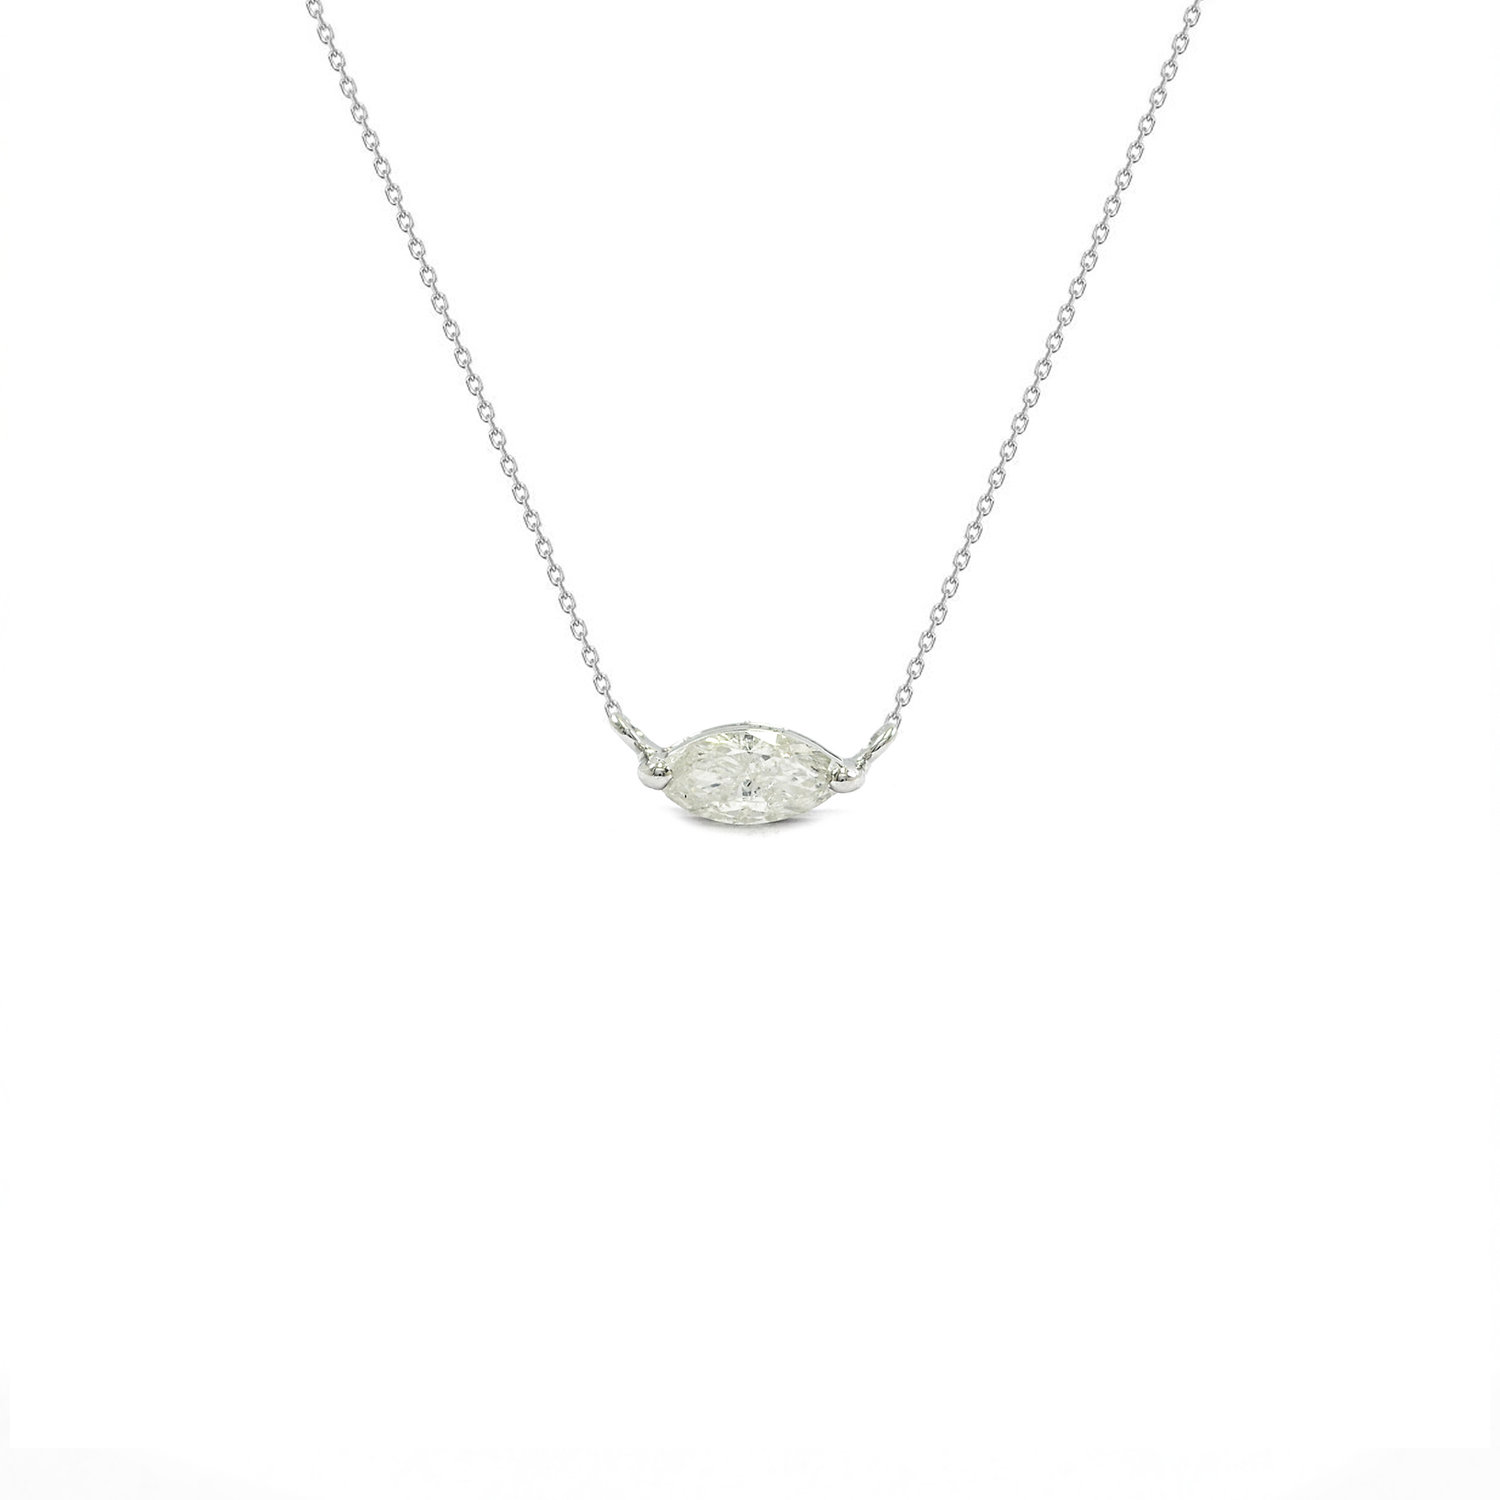 white pdp gold solitaire at ewa pendant johnlewis necklace buyewa online john com lewis main rsp diamond